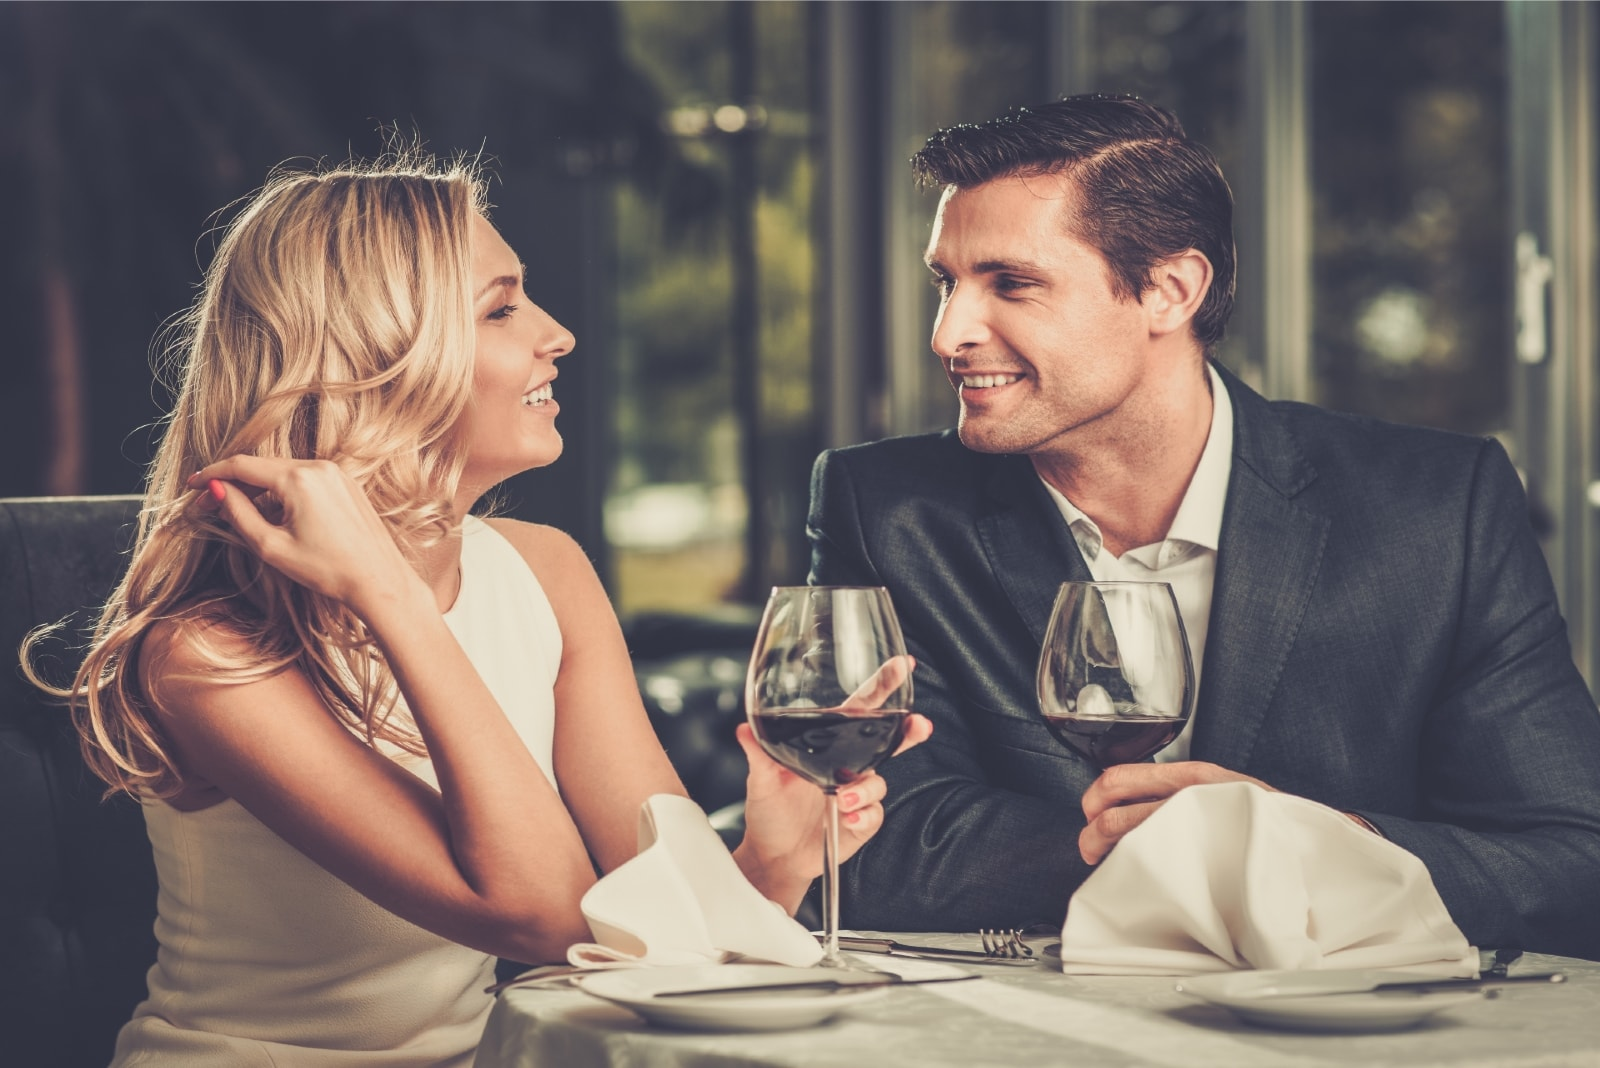 happy man and woman drinking wine while sitting at table